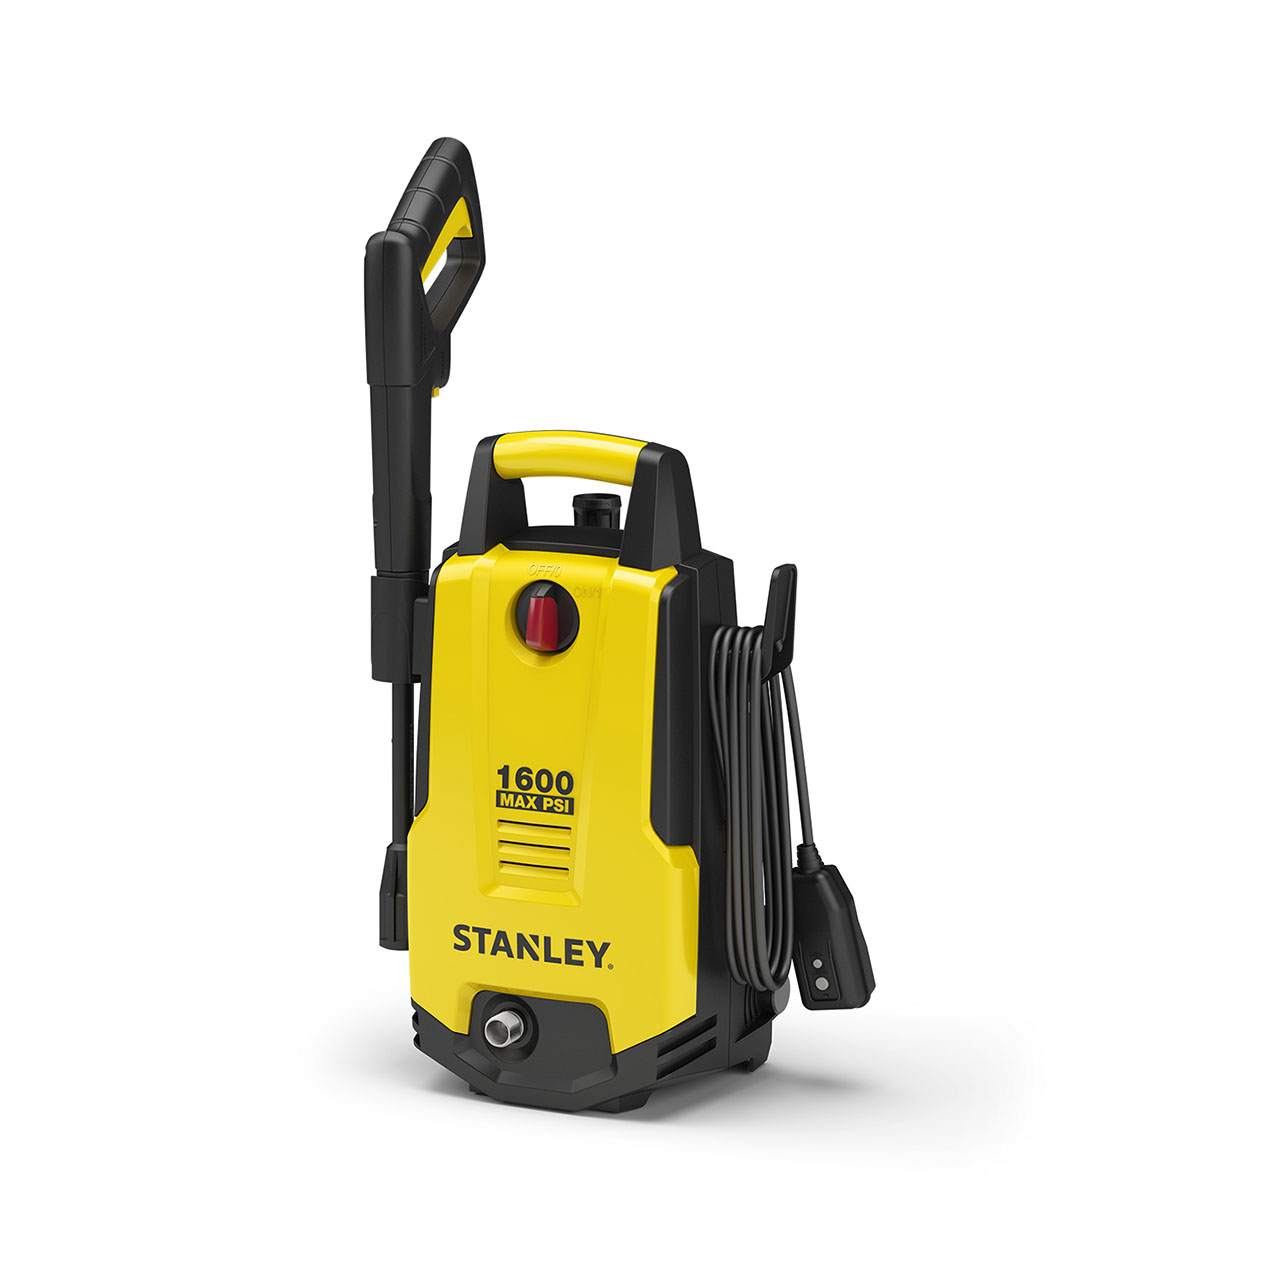 stanley-1600-PSI-front-web